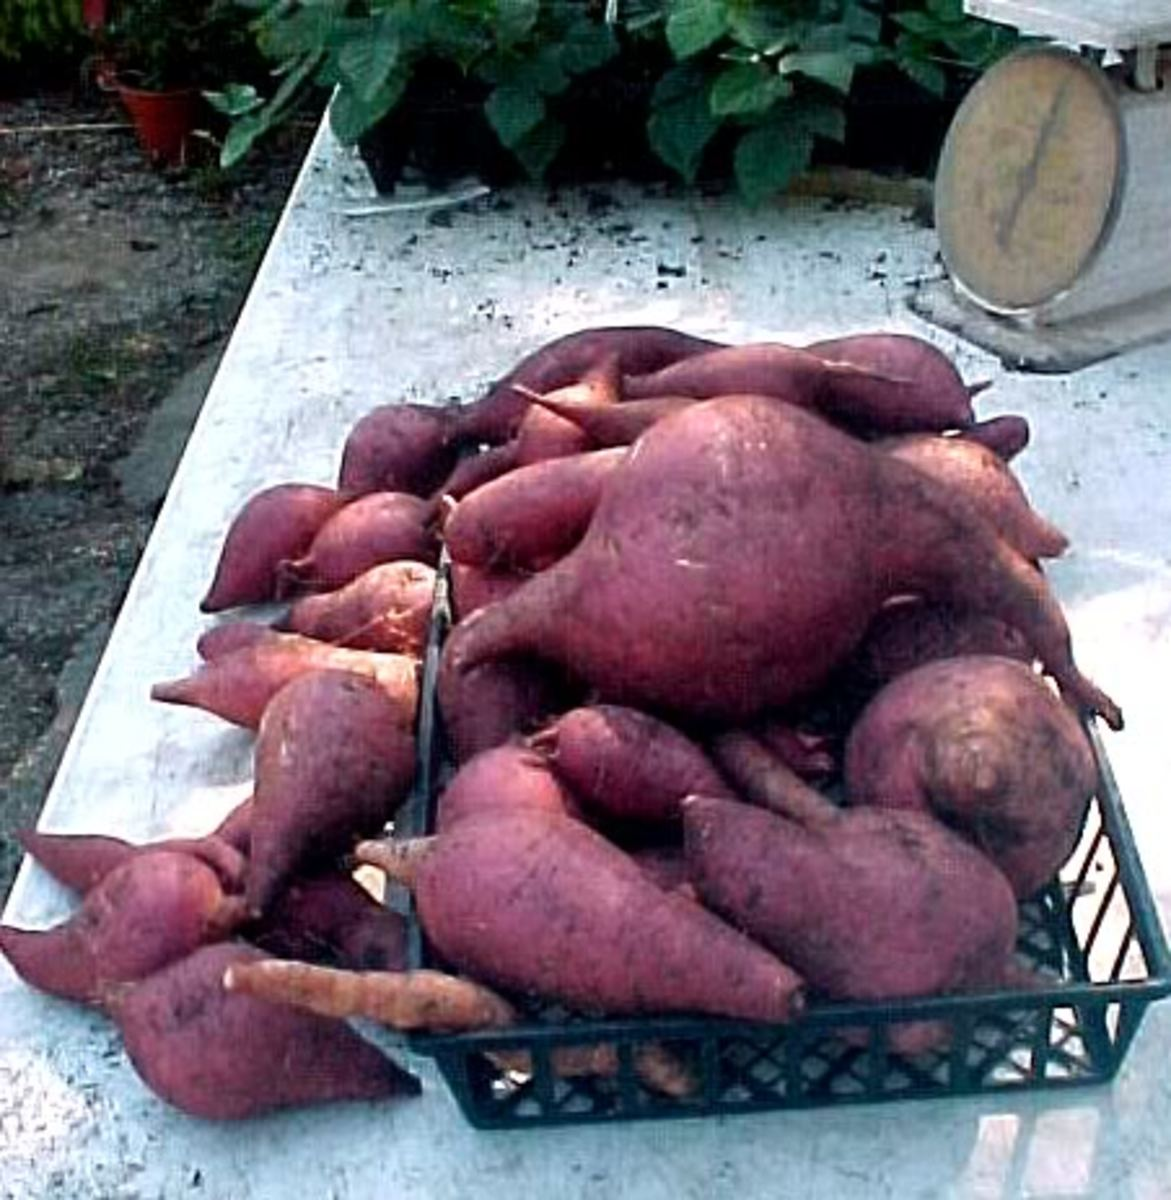 SweetpotatoDiane By DuckCreekFarms, source Photobucket